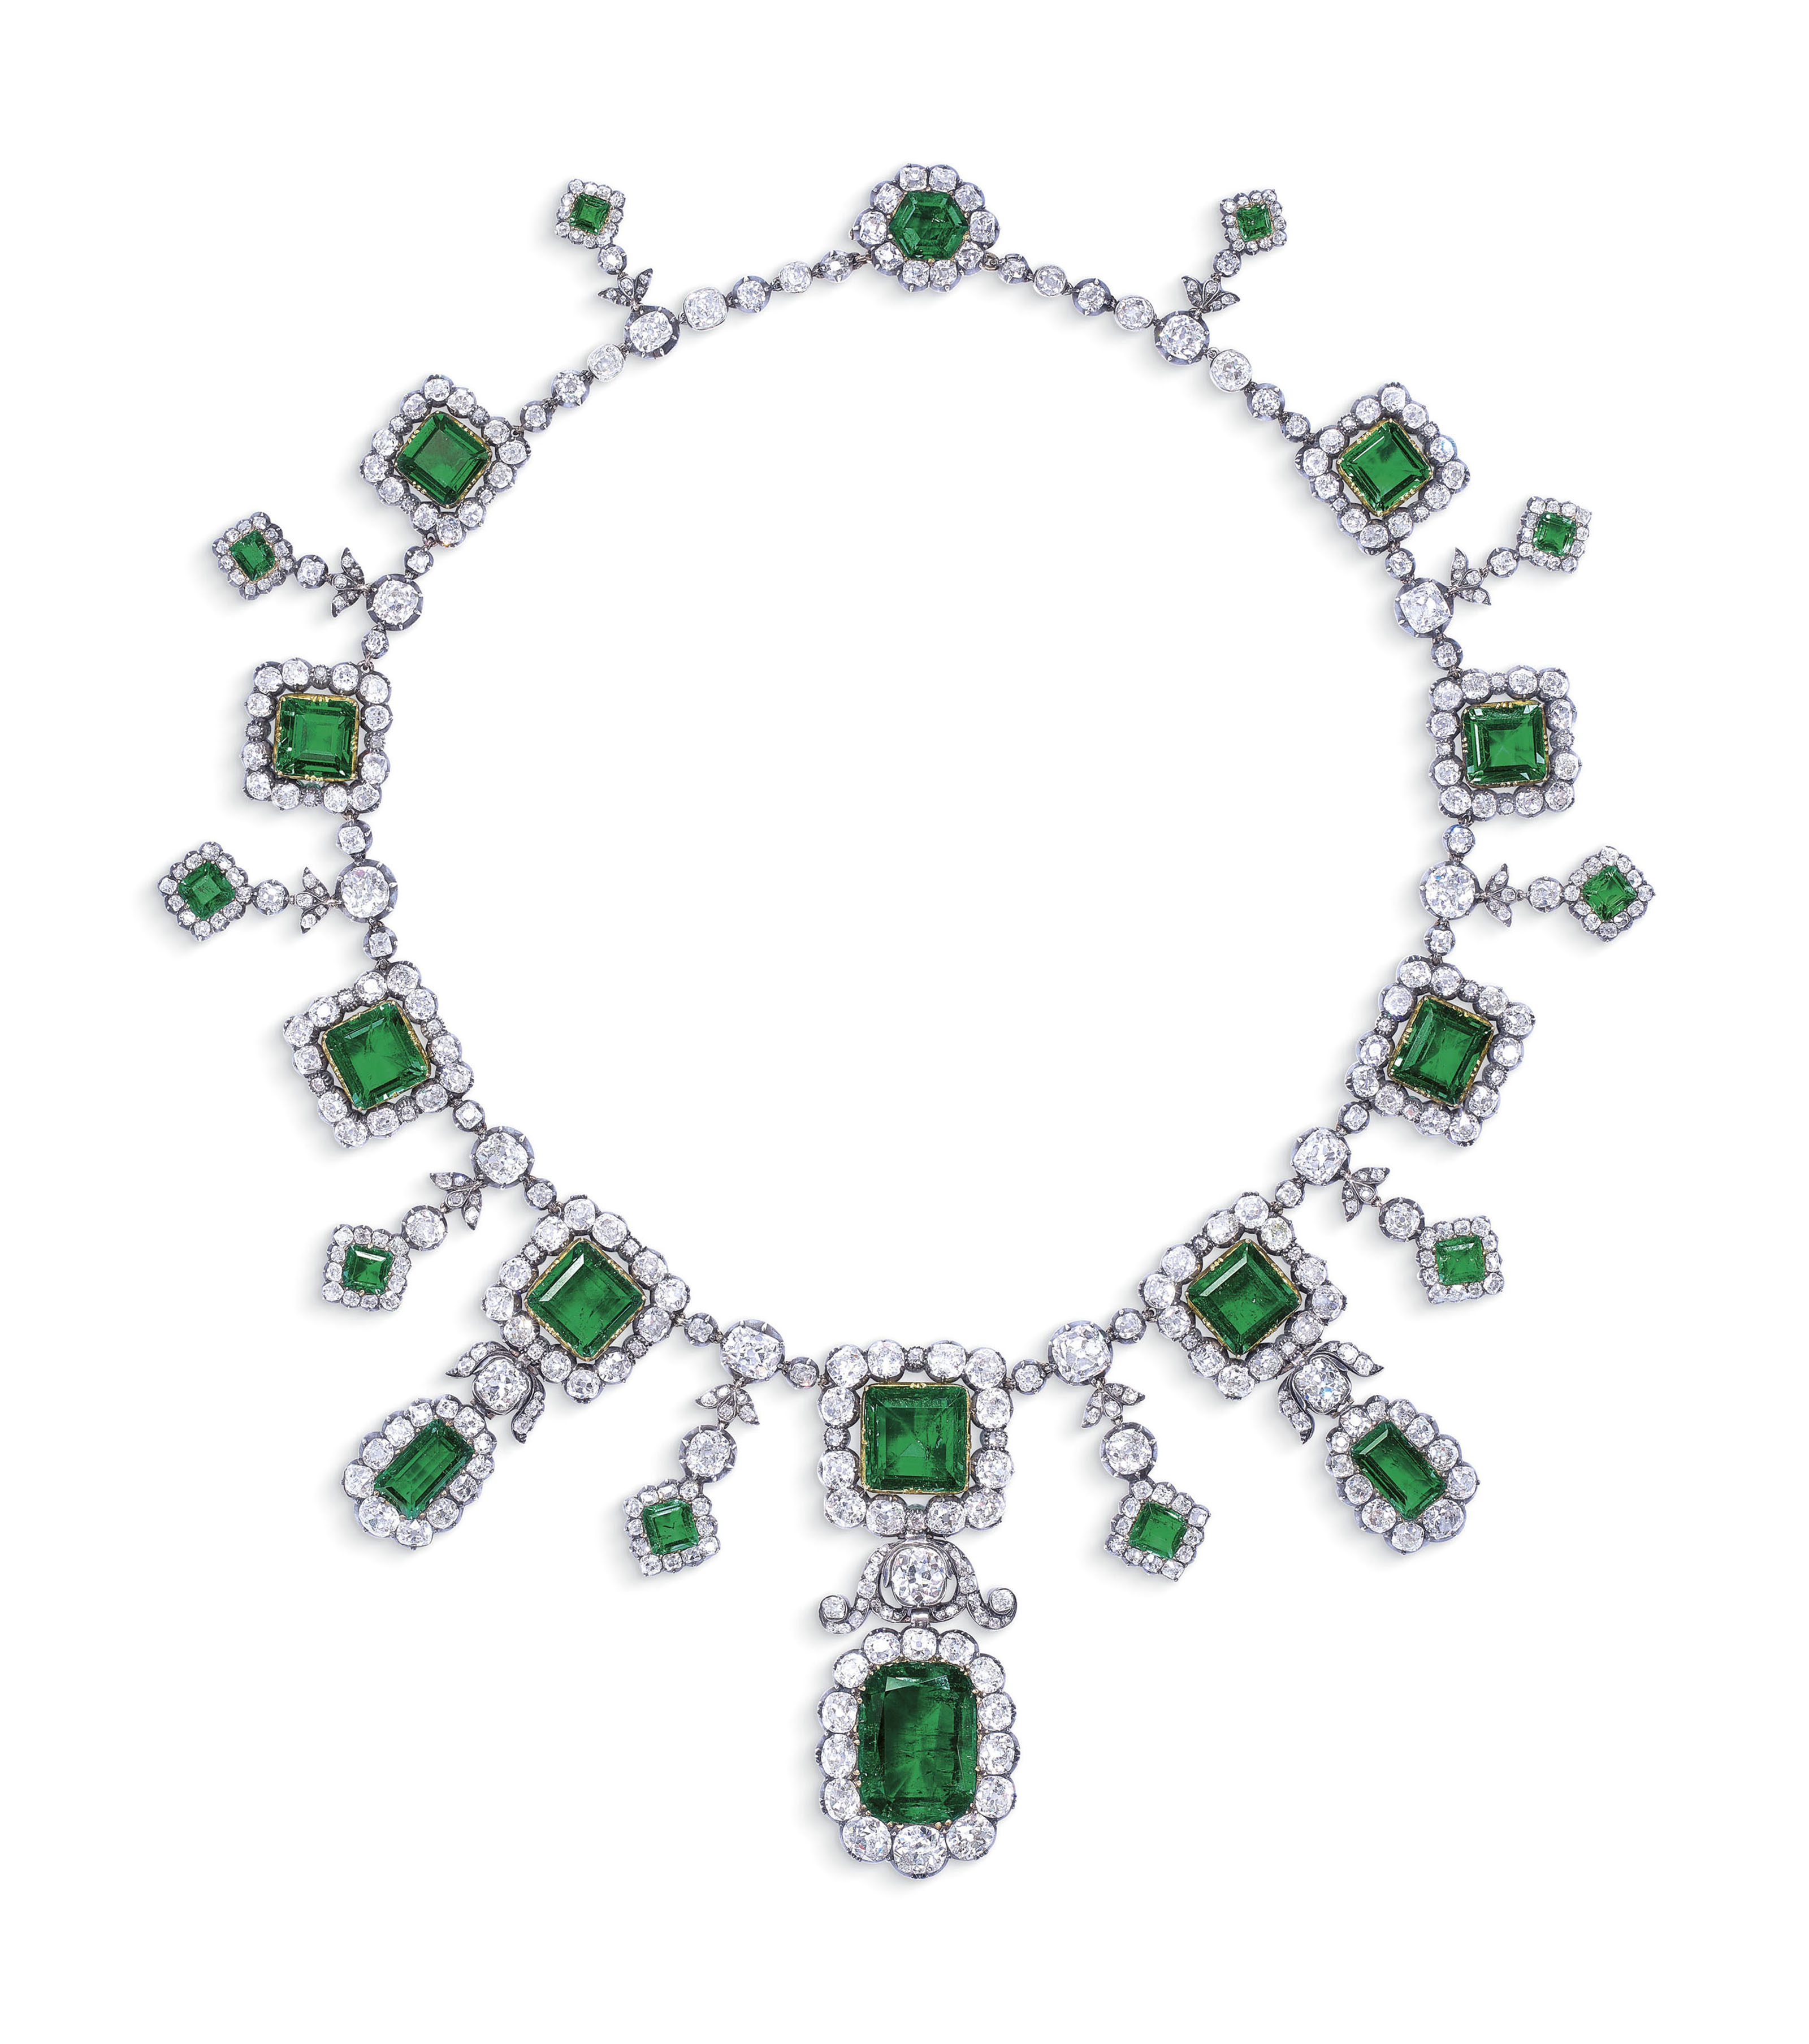 HISTORIC EARLY 19TH CENTURY EMERALD AND DIAMOND FRINGE NECKLACE